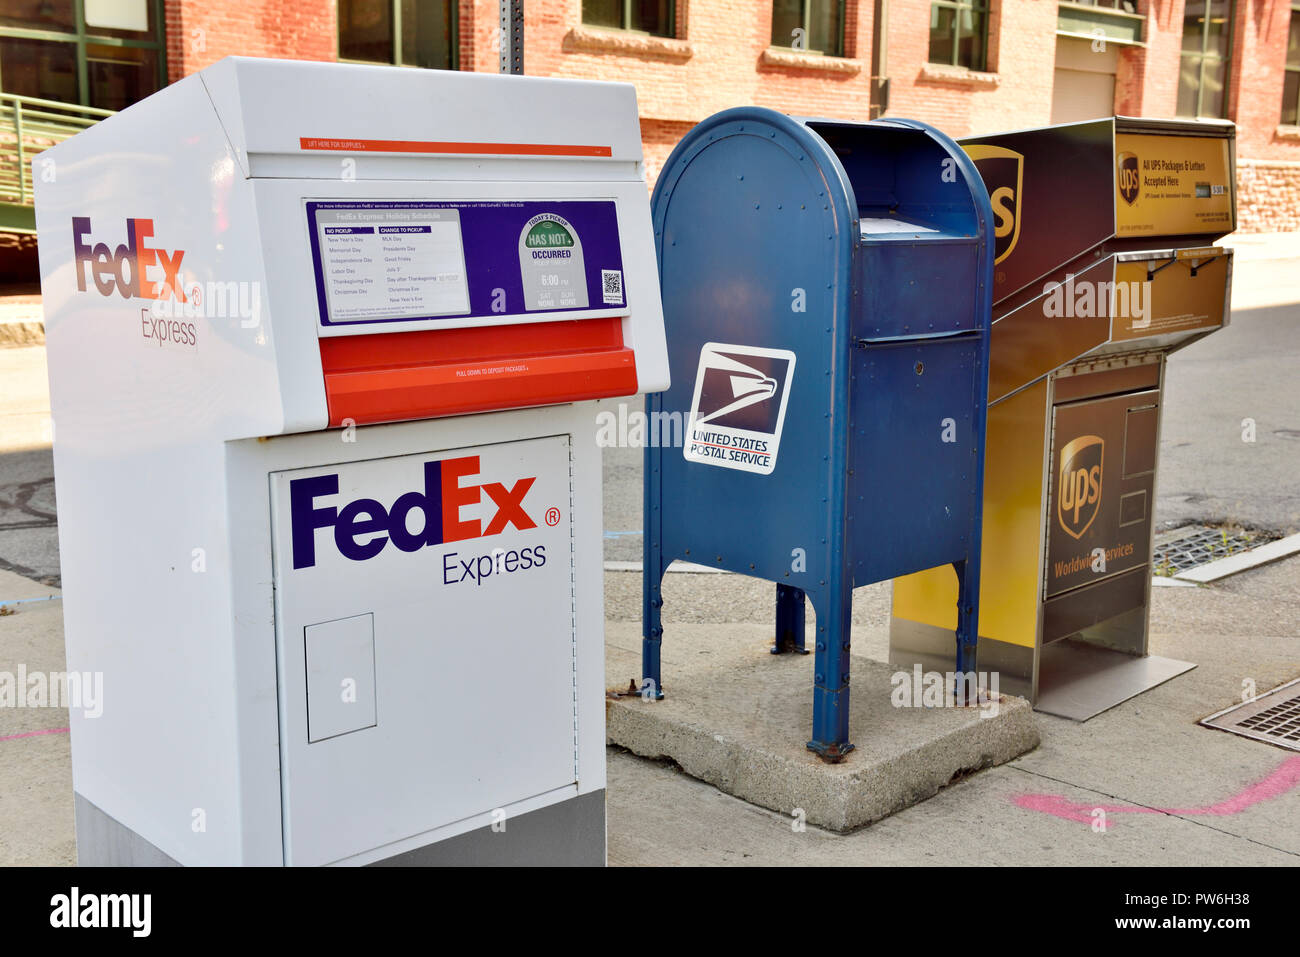 FedEx, US Postal and UPS drop off  for collection posting boxes on sidewalk, USA - Stock Image